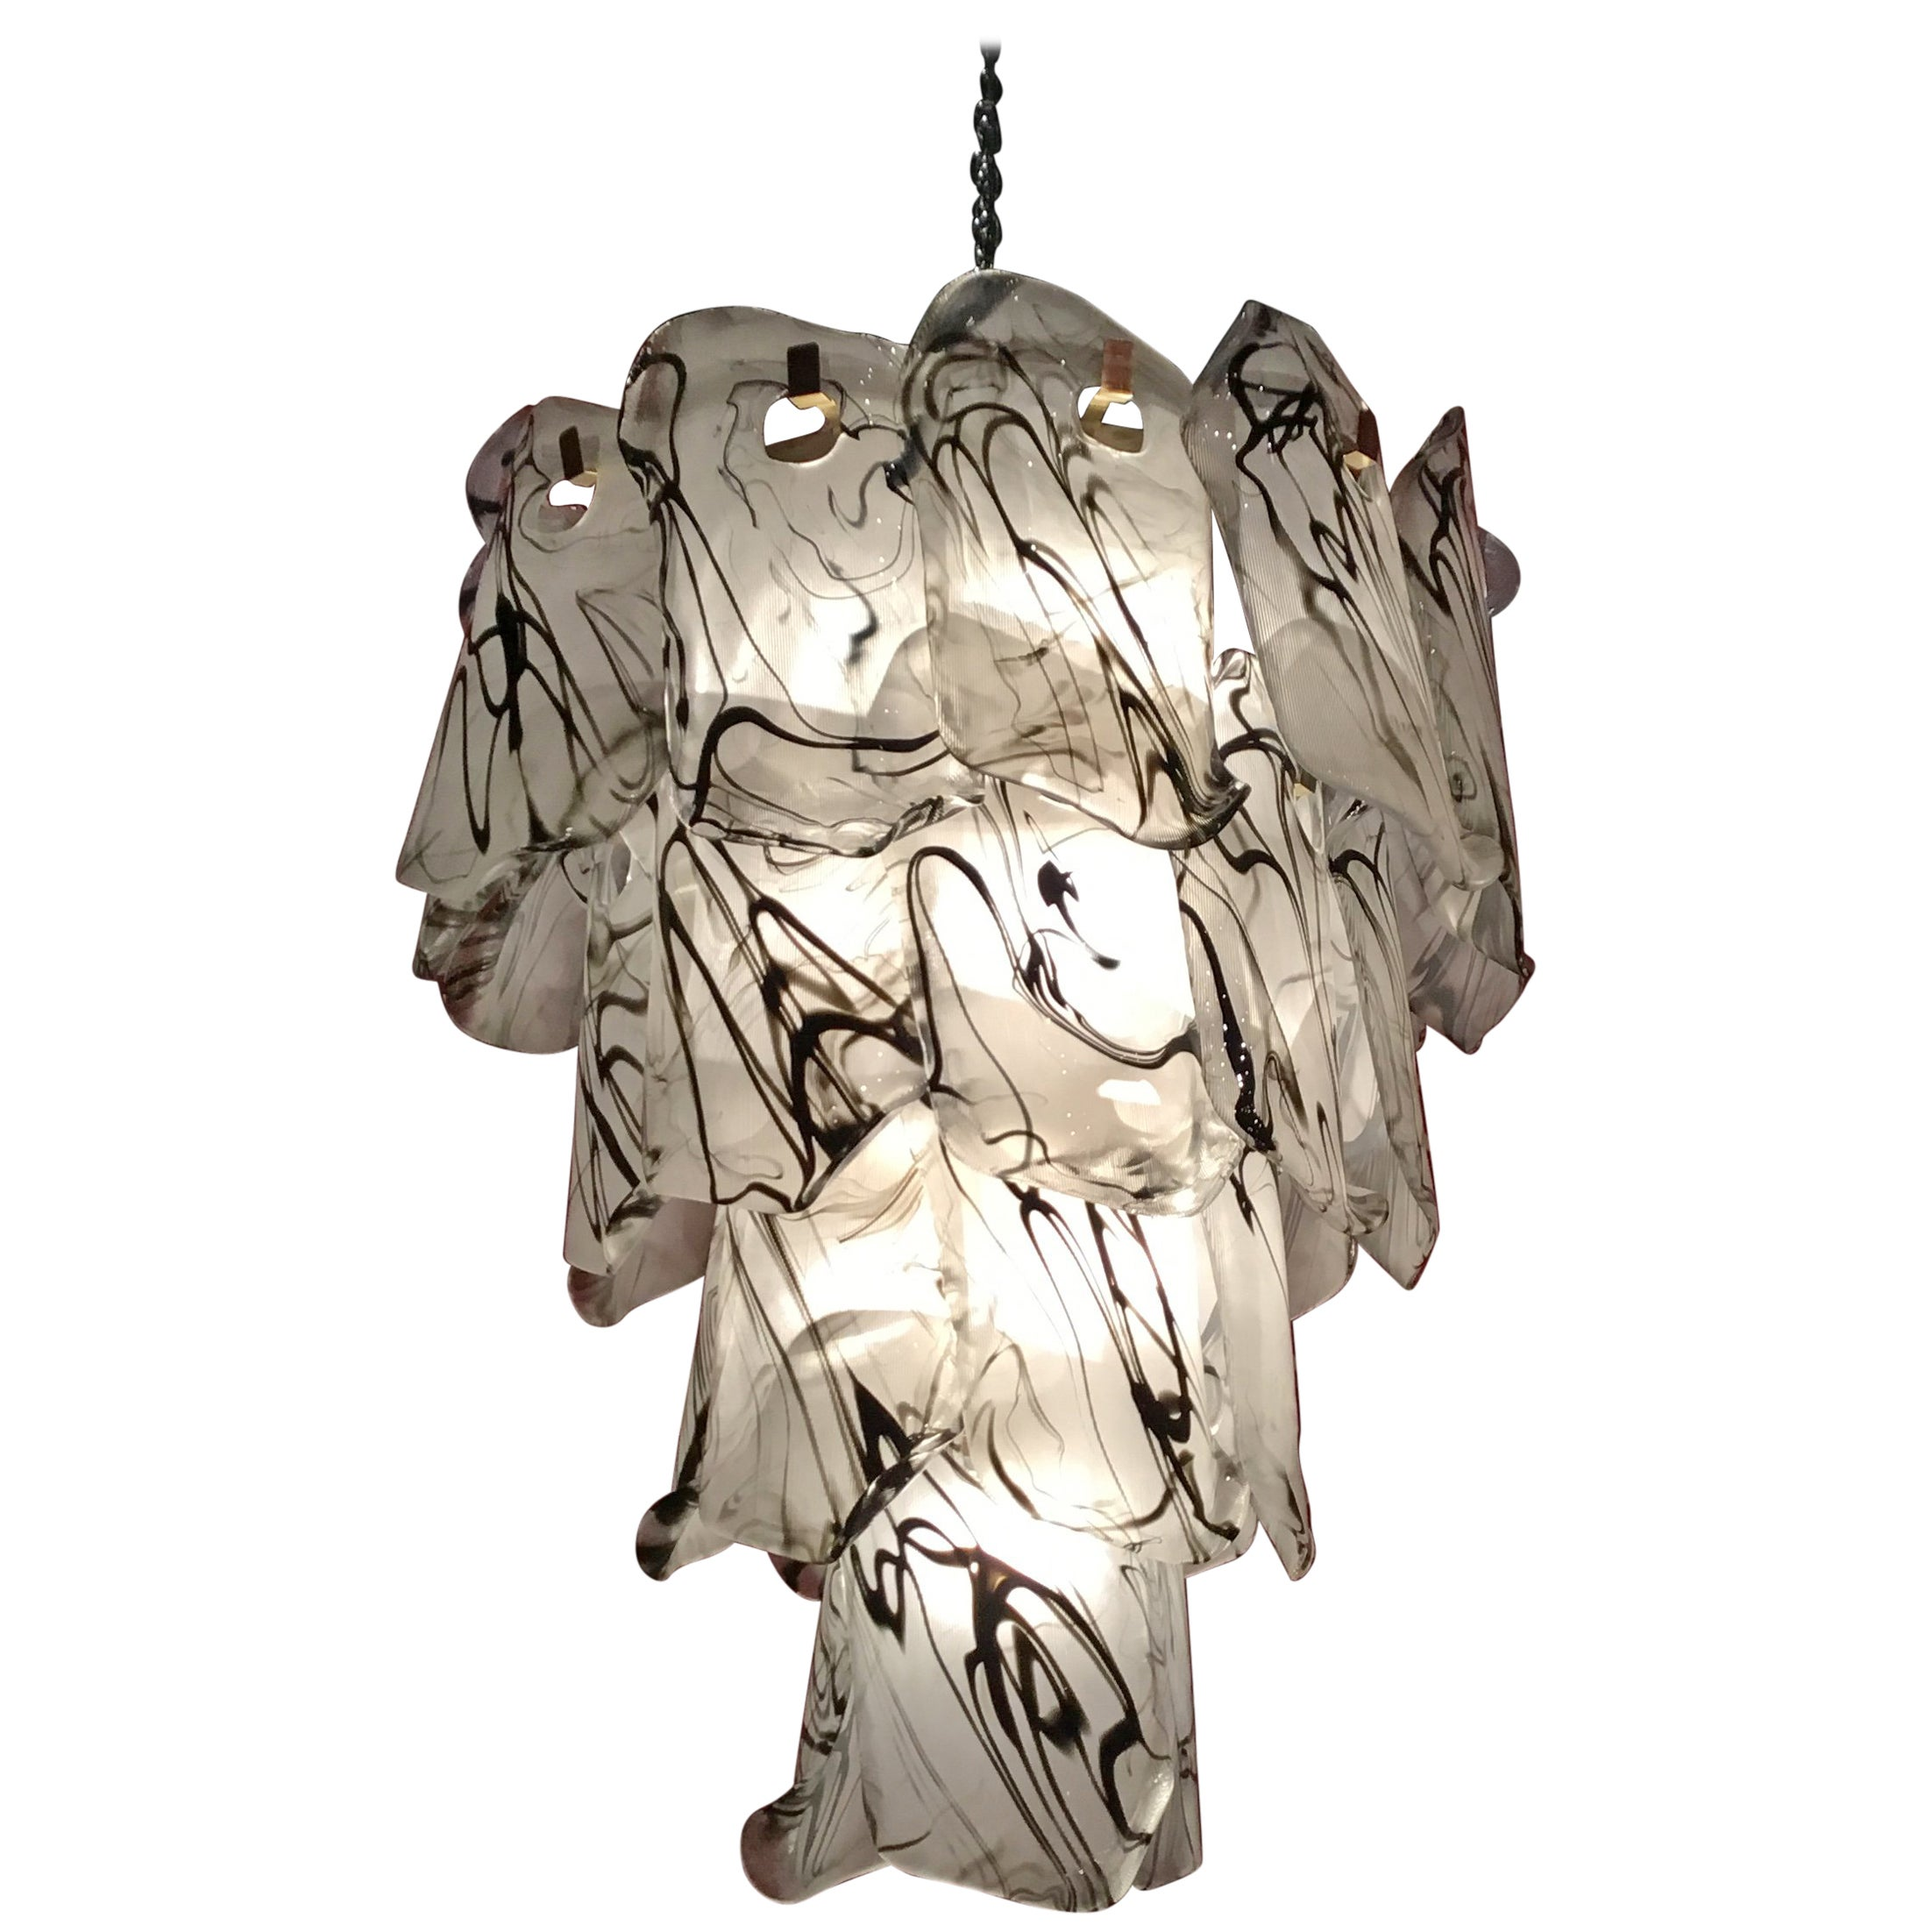 Black and white Murano Glass Chandelier Lamp, 1980s, Made in Italy